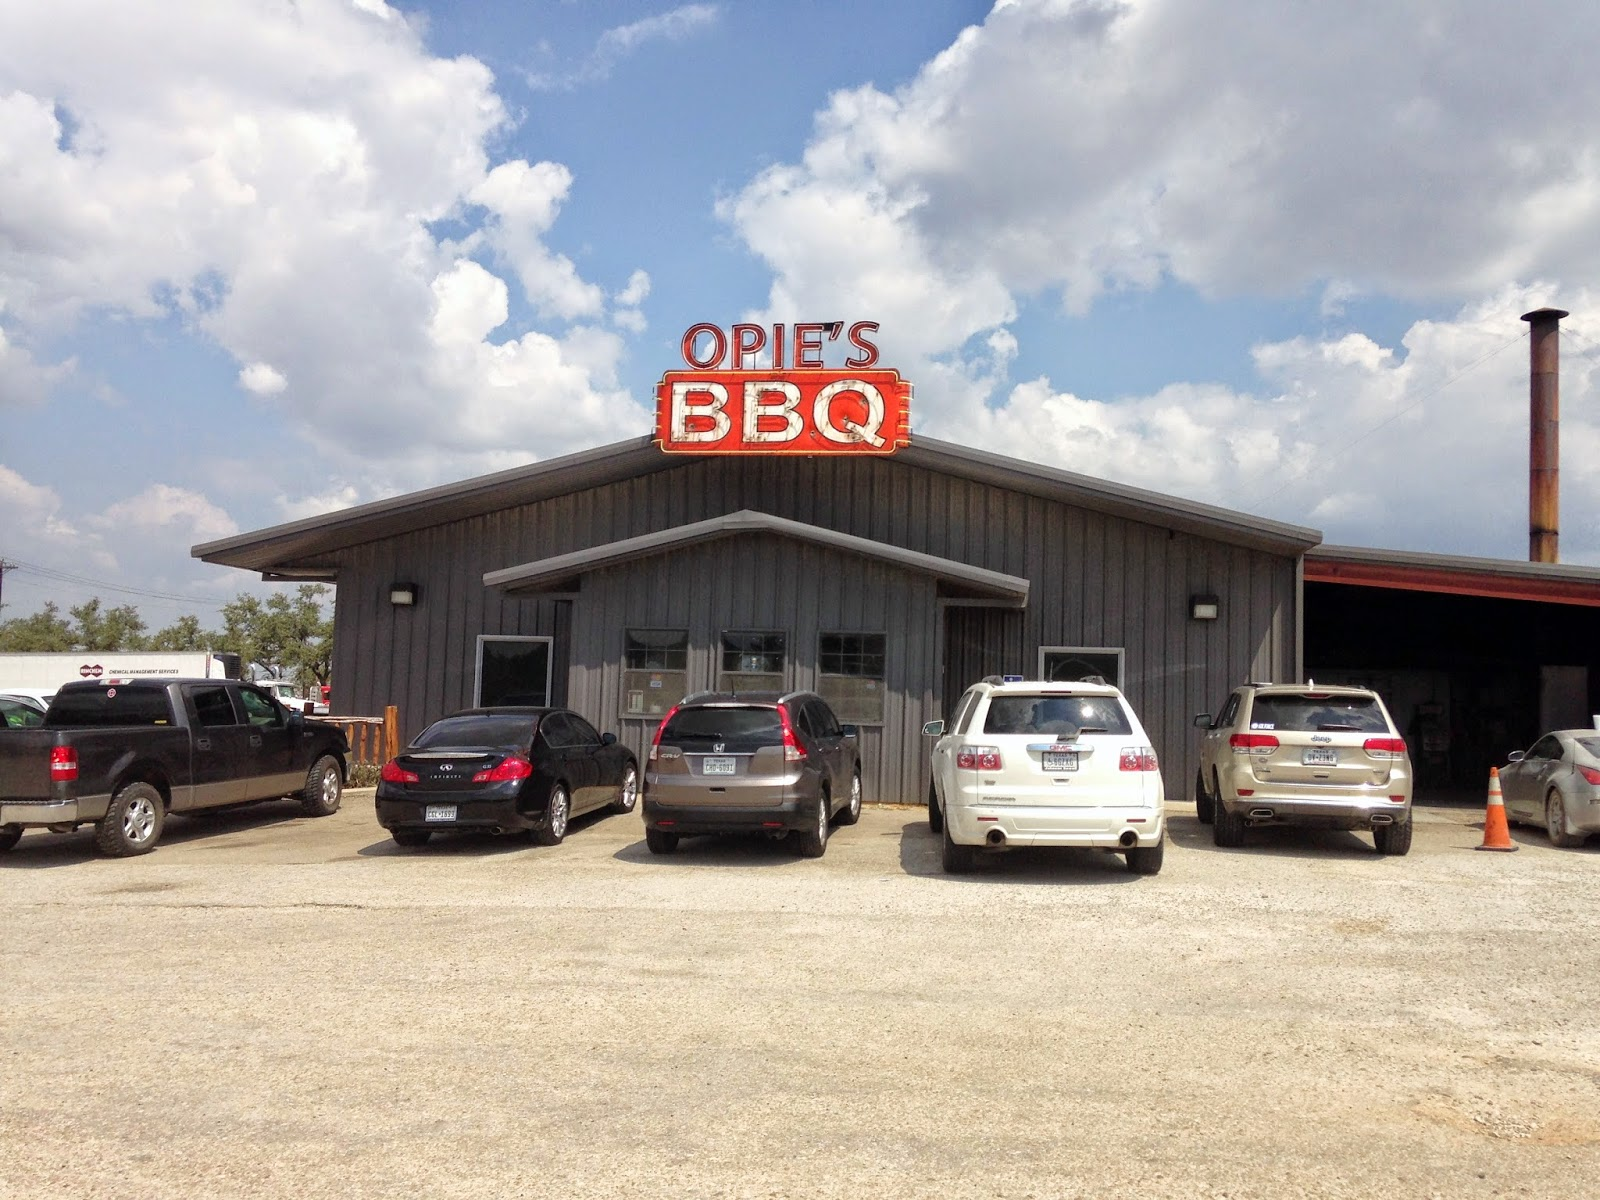 Opie's BBQ in Spicewood, Texas